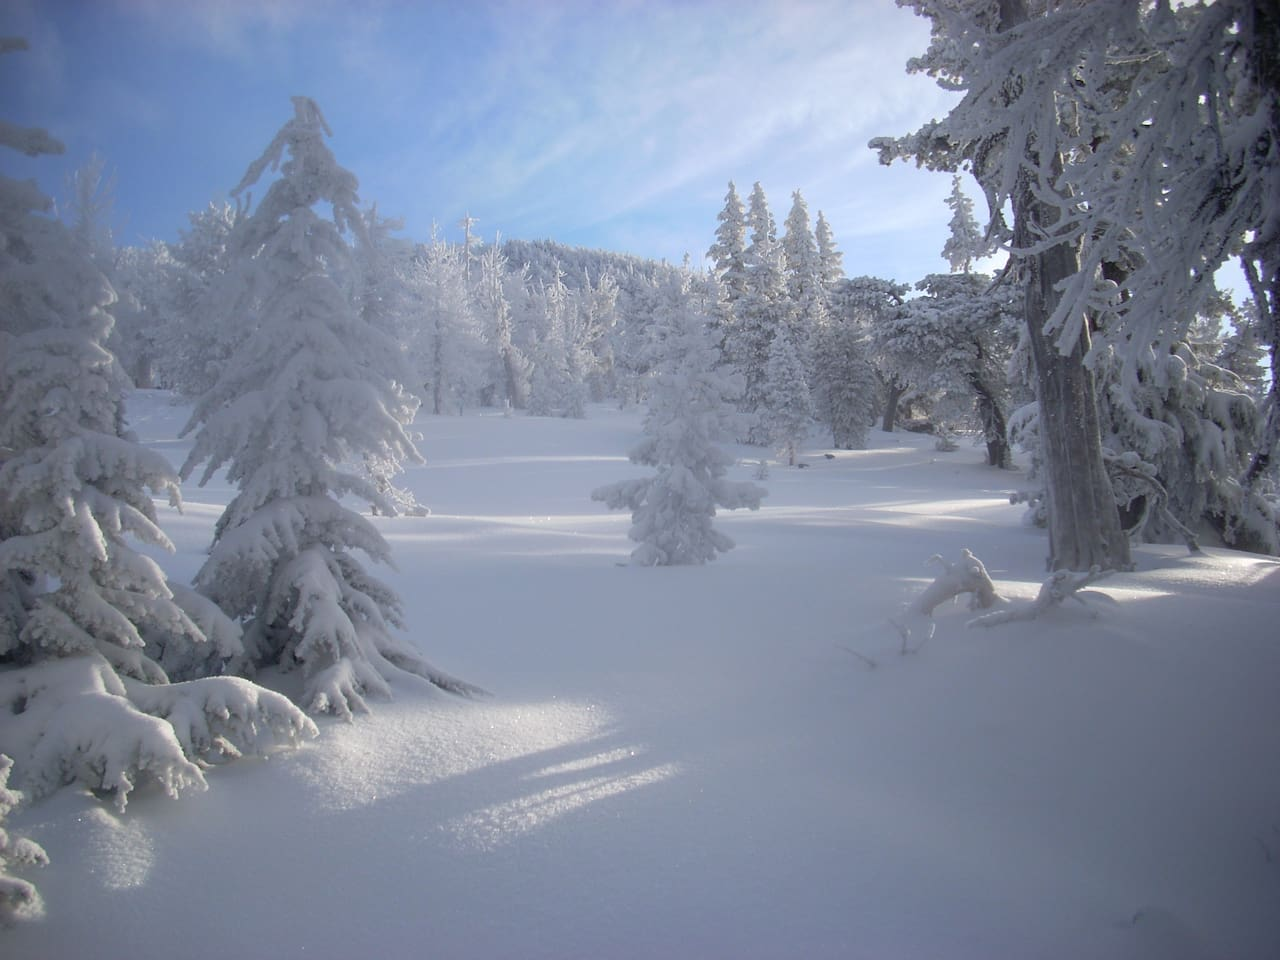 Snow accumulation reported on Mt. Bachelor today (Nov. 3). This is a picture from 2011, so you know what might  happen :)